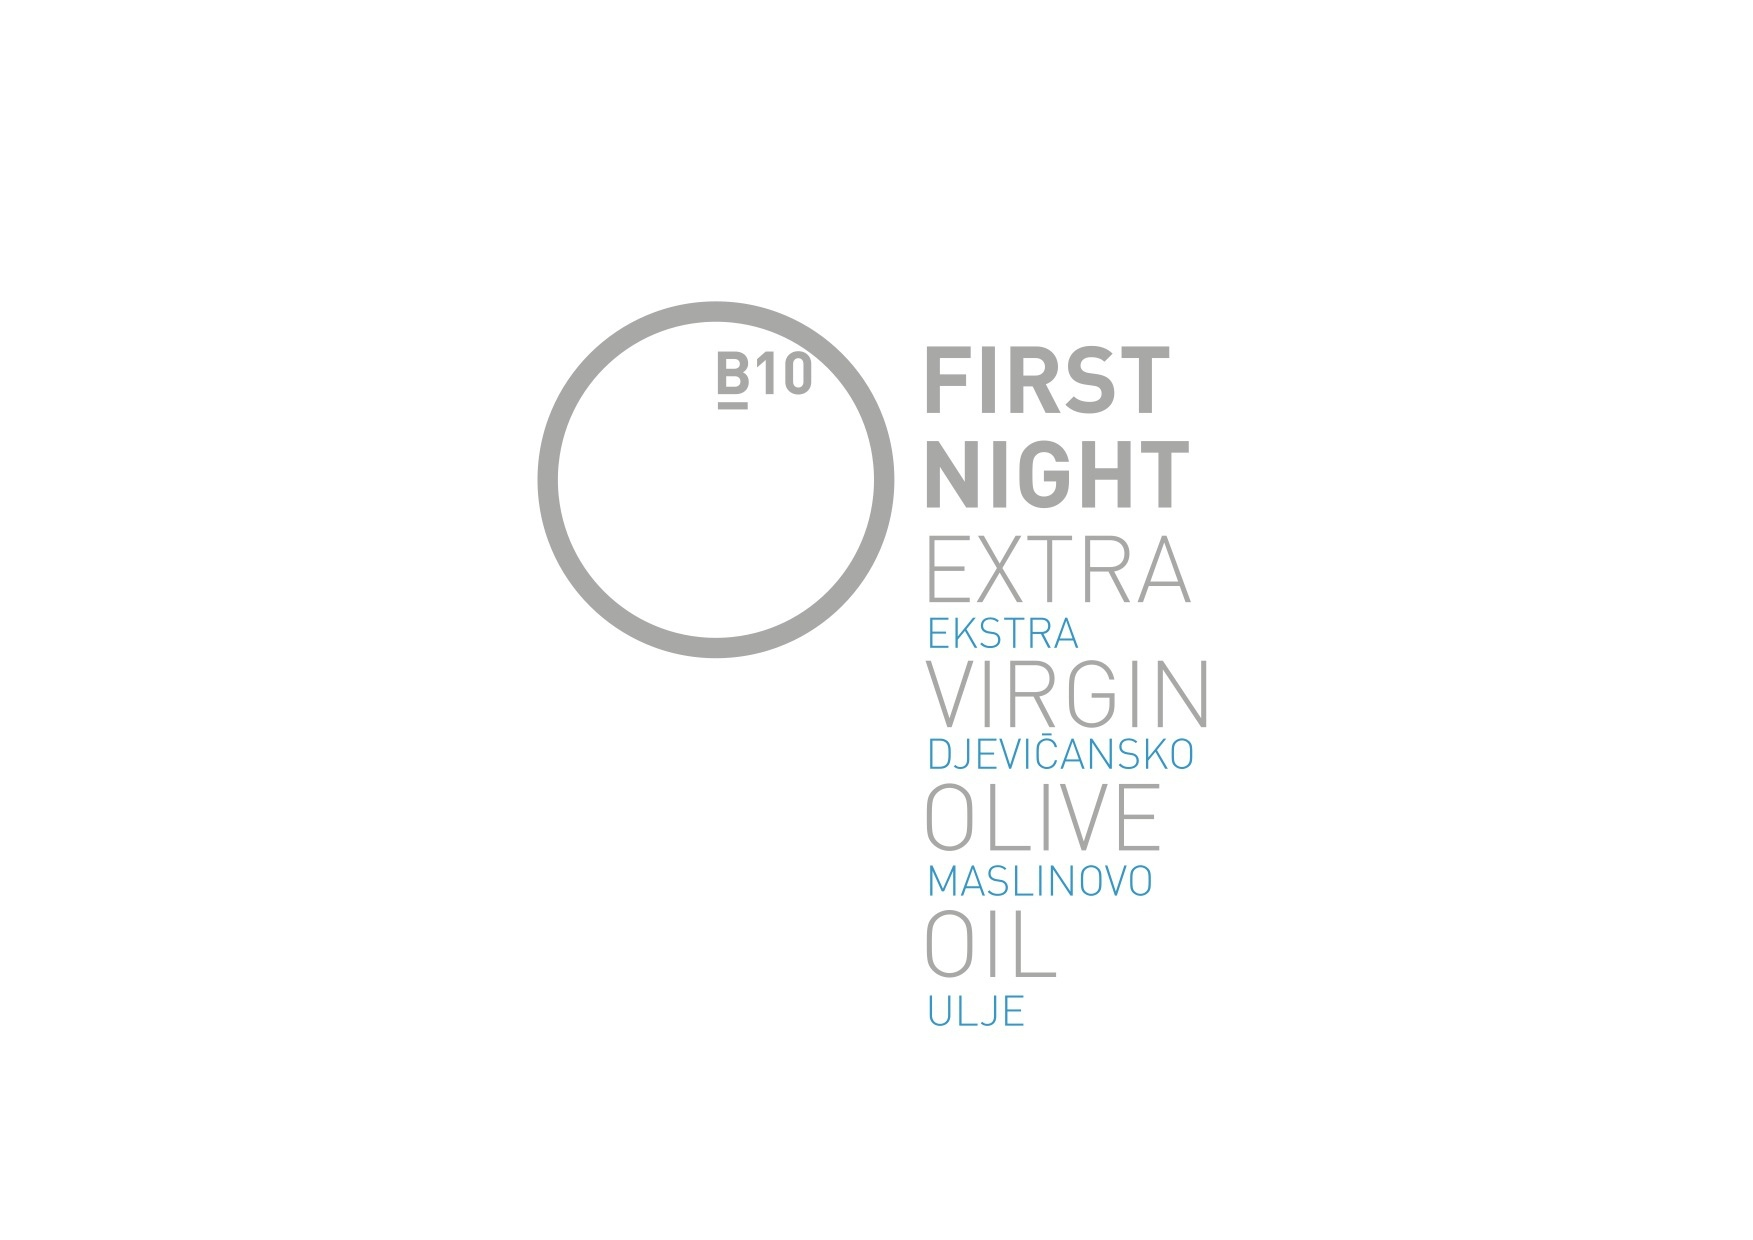 B10 FIRST NIGHT EXTRA VIRGIN OLIVE OIL